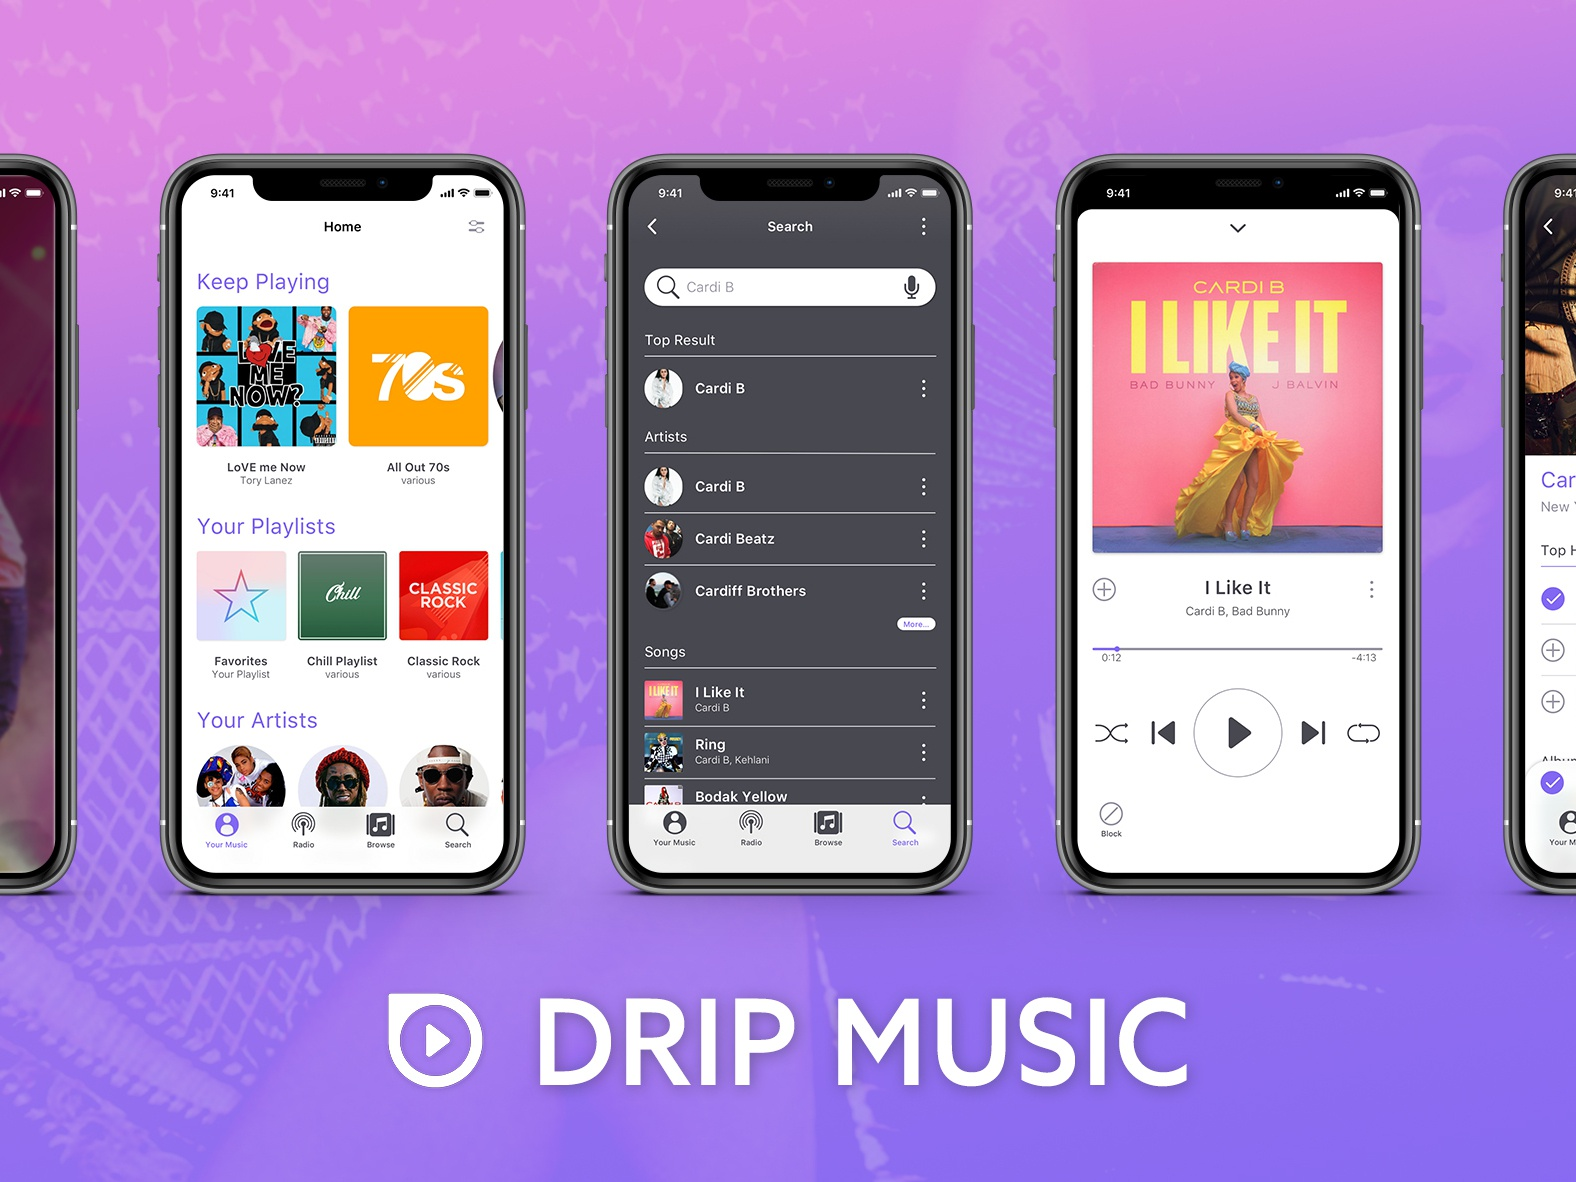 Drip music app display